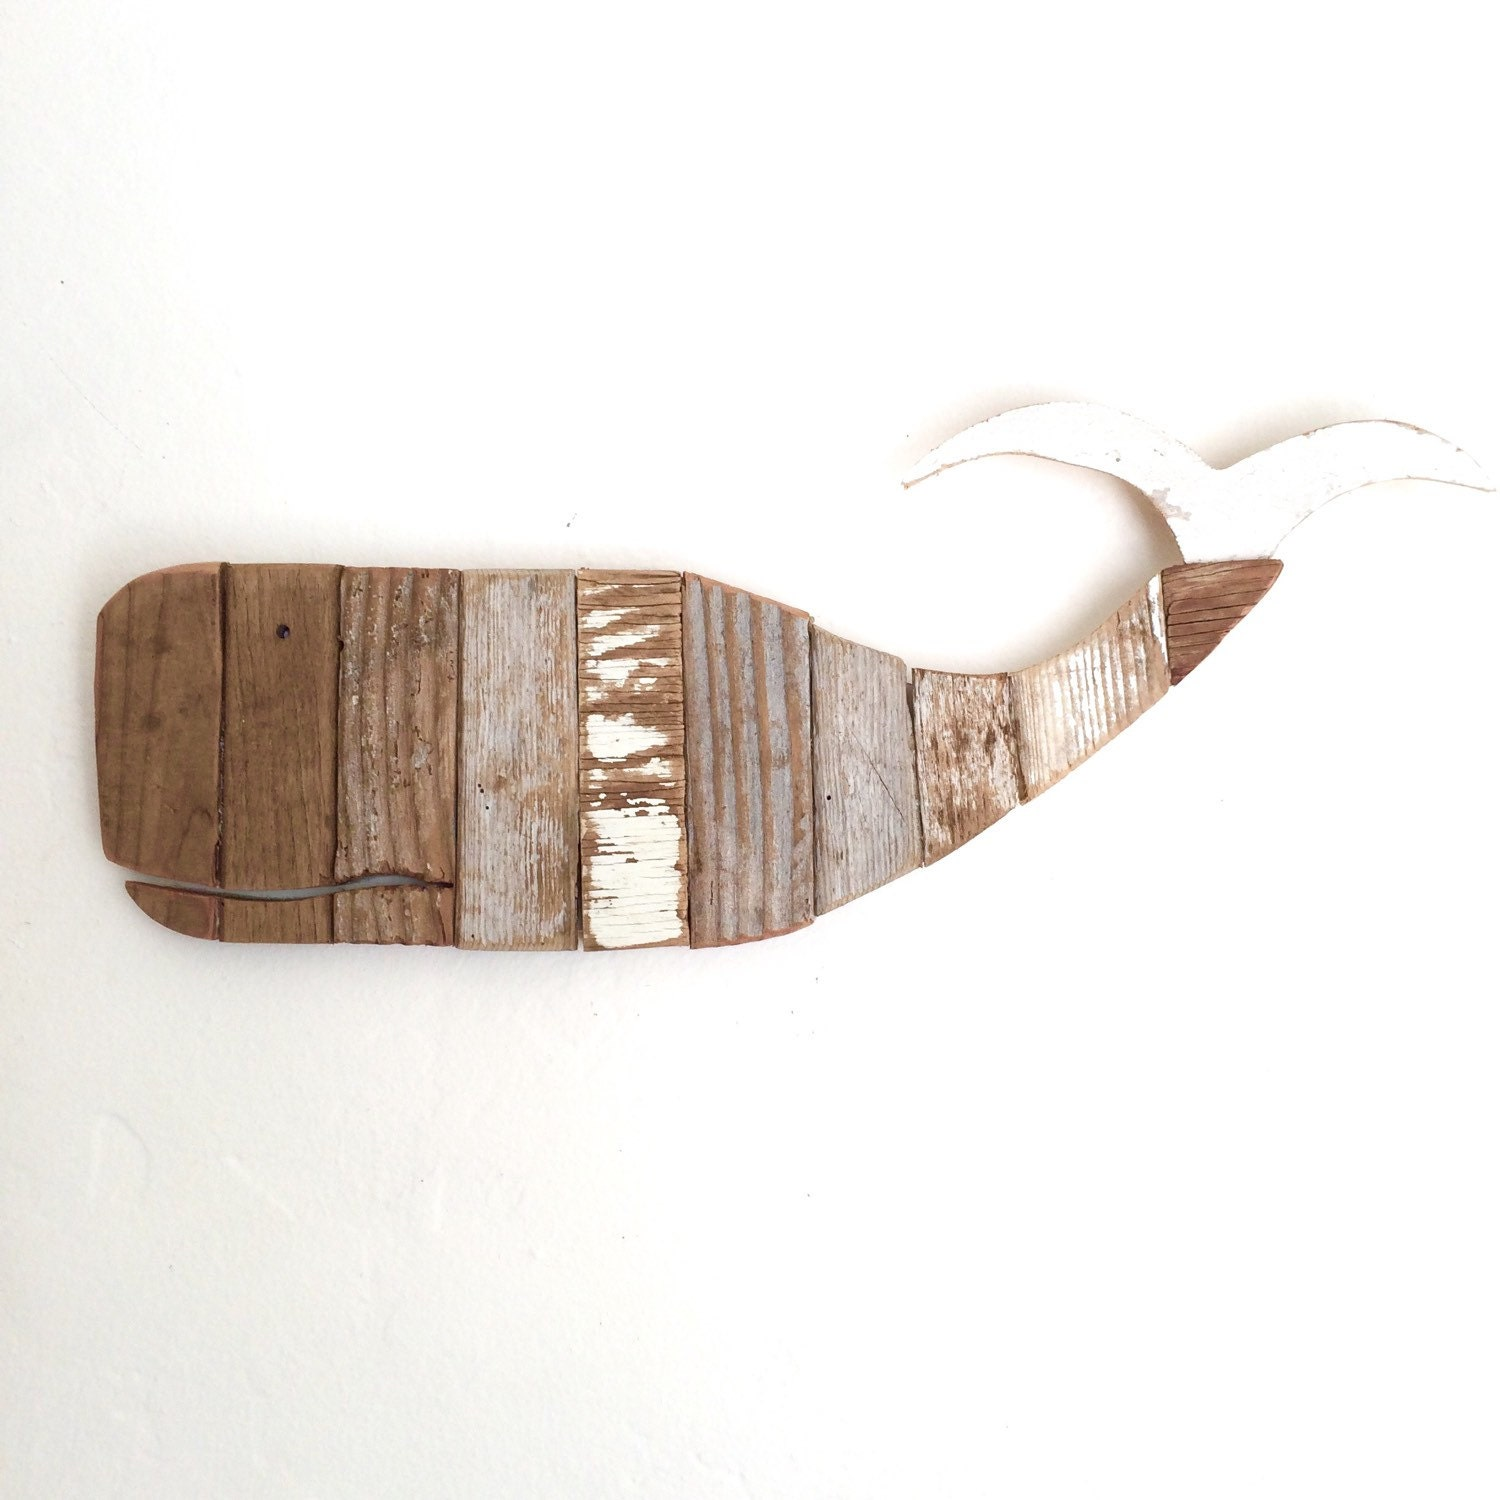 Driftwood whale wall art wall hanging made from by madebycbk for Driftwood wall